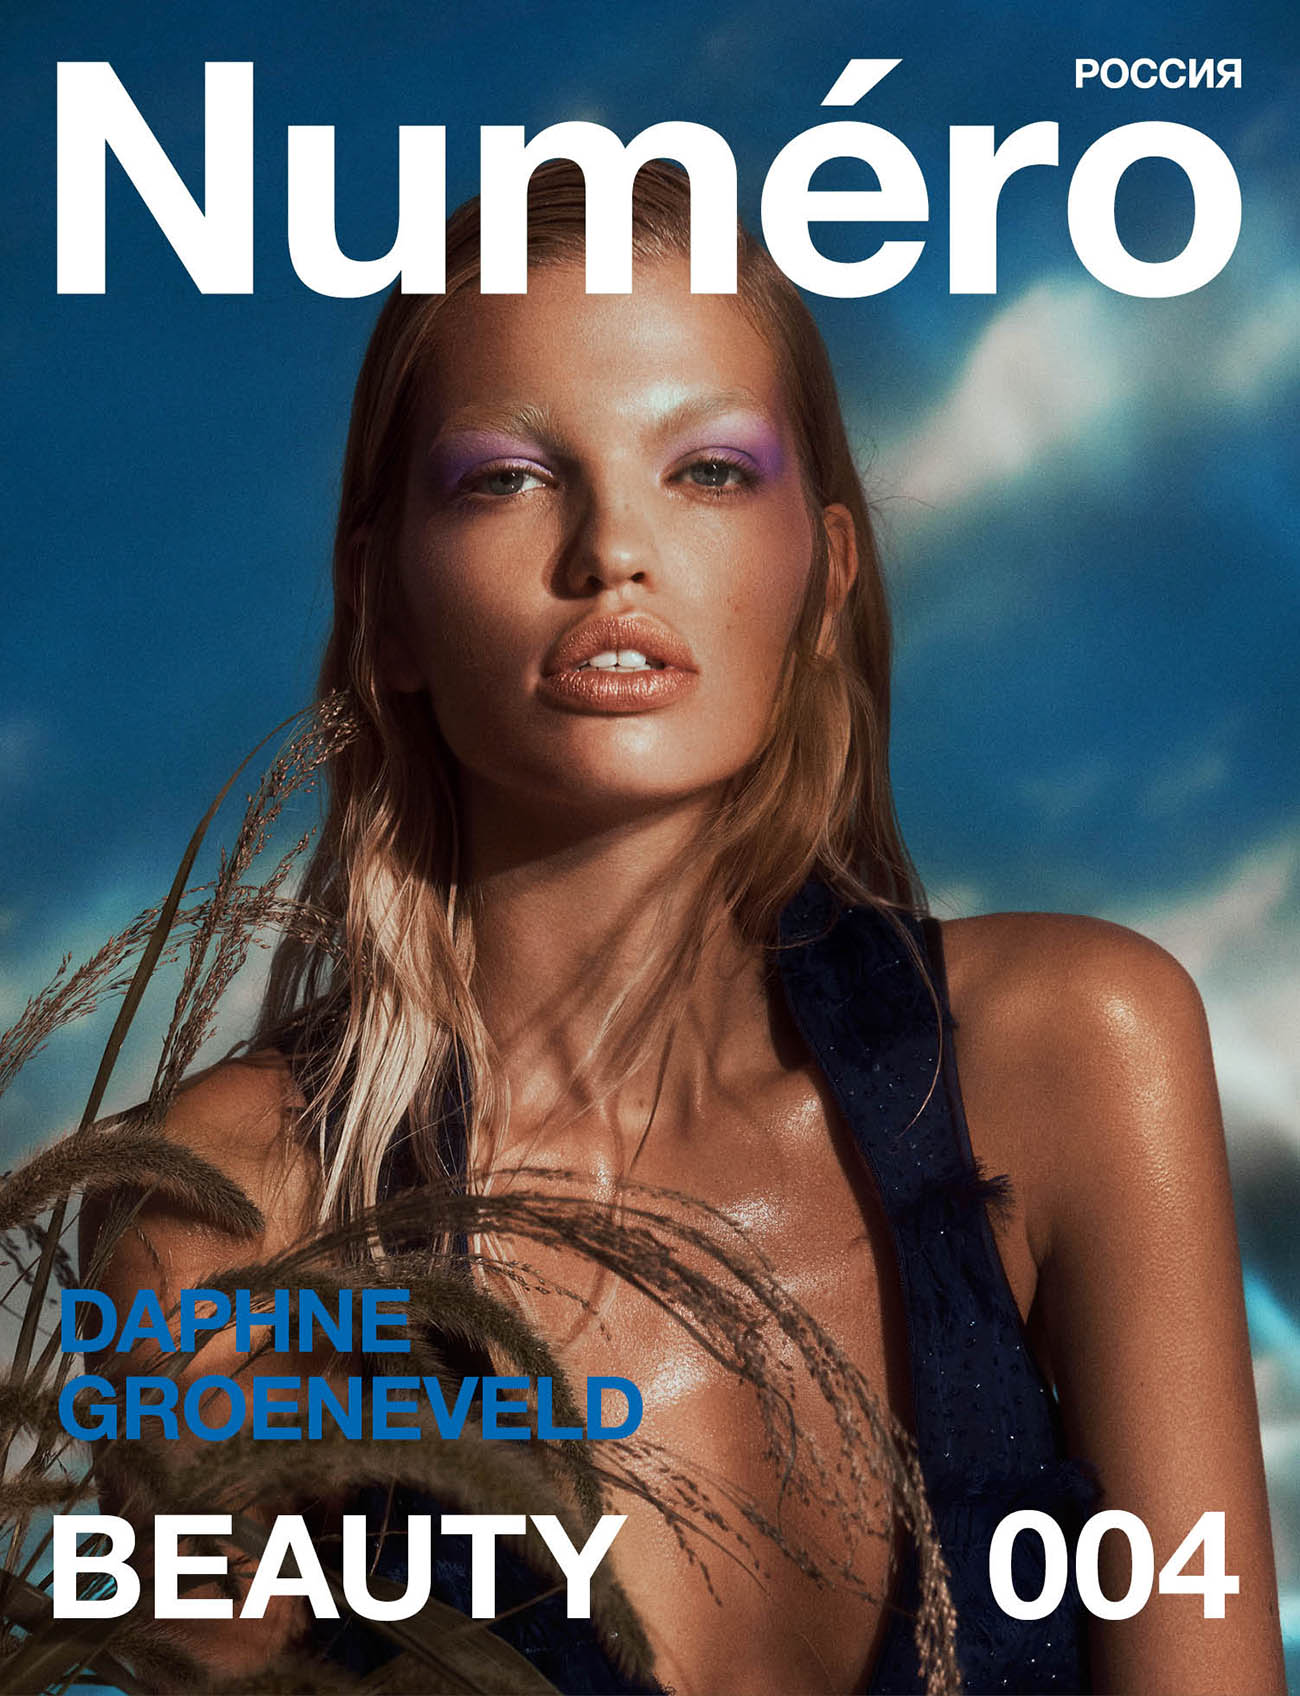 Daphne Groeneveld covers Numéro Russia Digital Beauty 004 by Caleb & Gladys